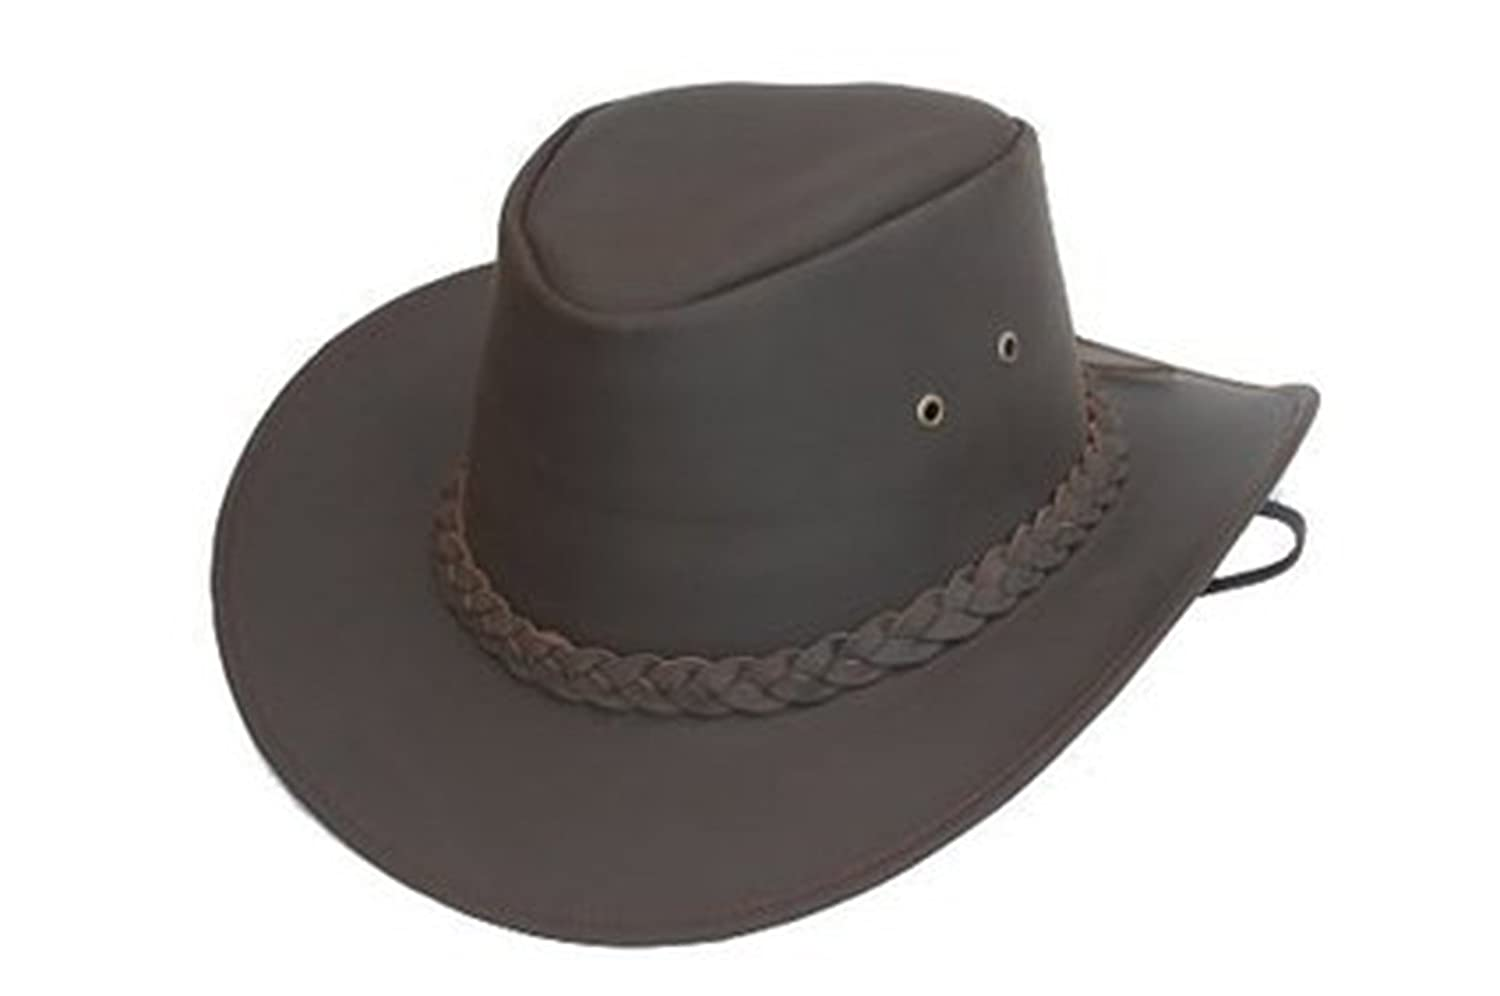 NEW BROWN LEATHER AUSSIE STYLE HAT 4 SIZES From £18.49